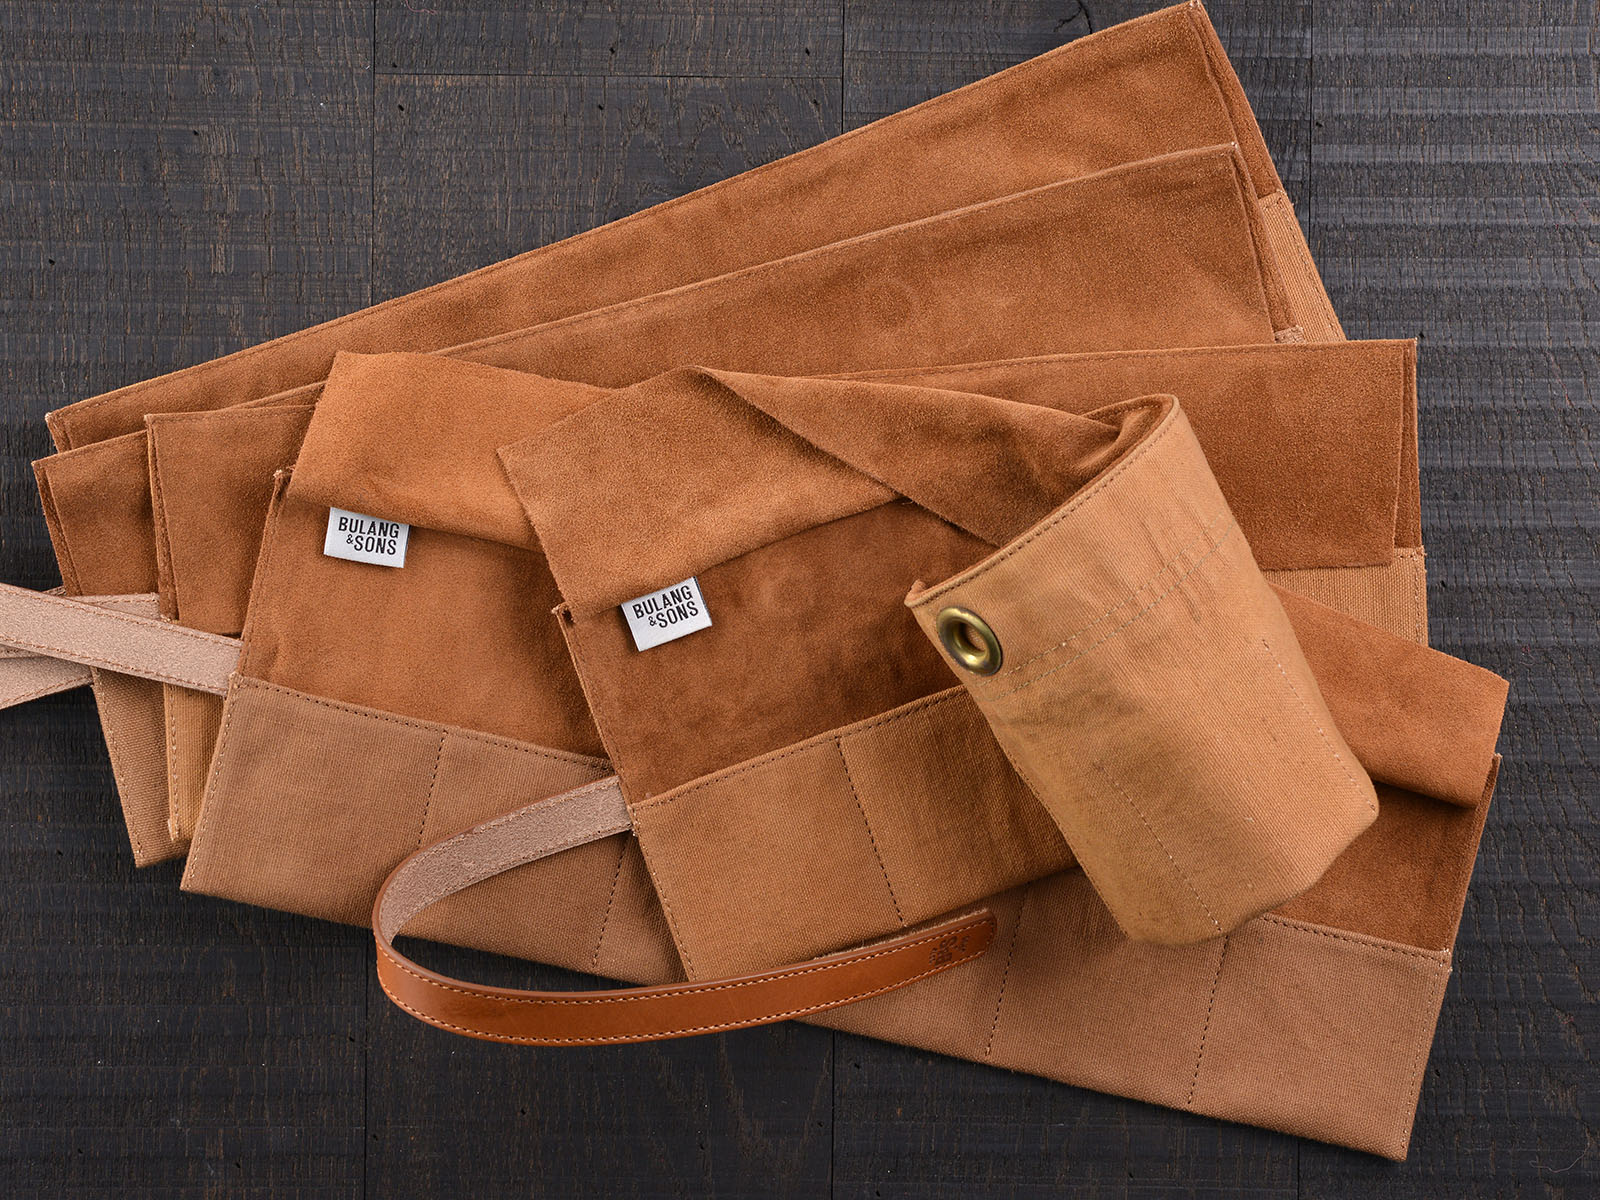 B&S/JP 'Signature' Vintage Leather / Canvas Watch Roll 09